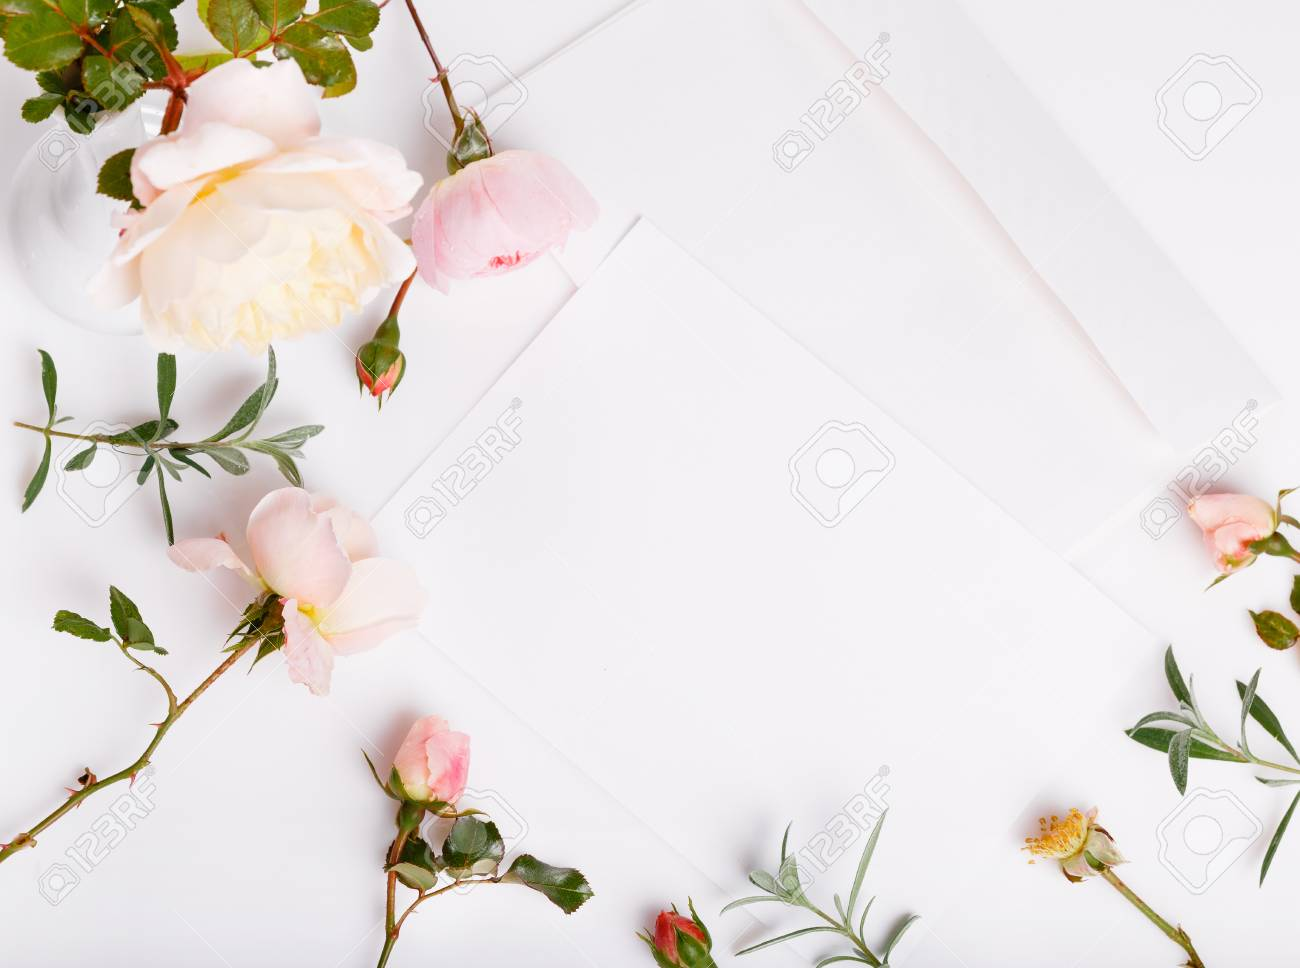 https www 123rf com photo 99349050 letter pen and white envelope on white background with pink english rose invitation cards or love le html